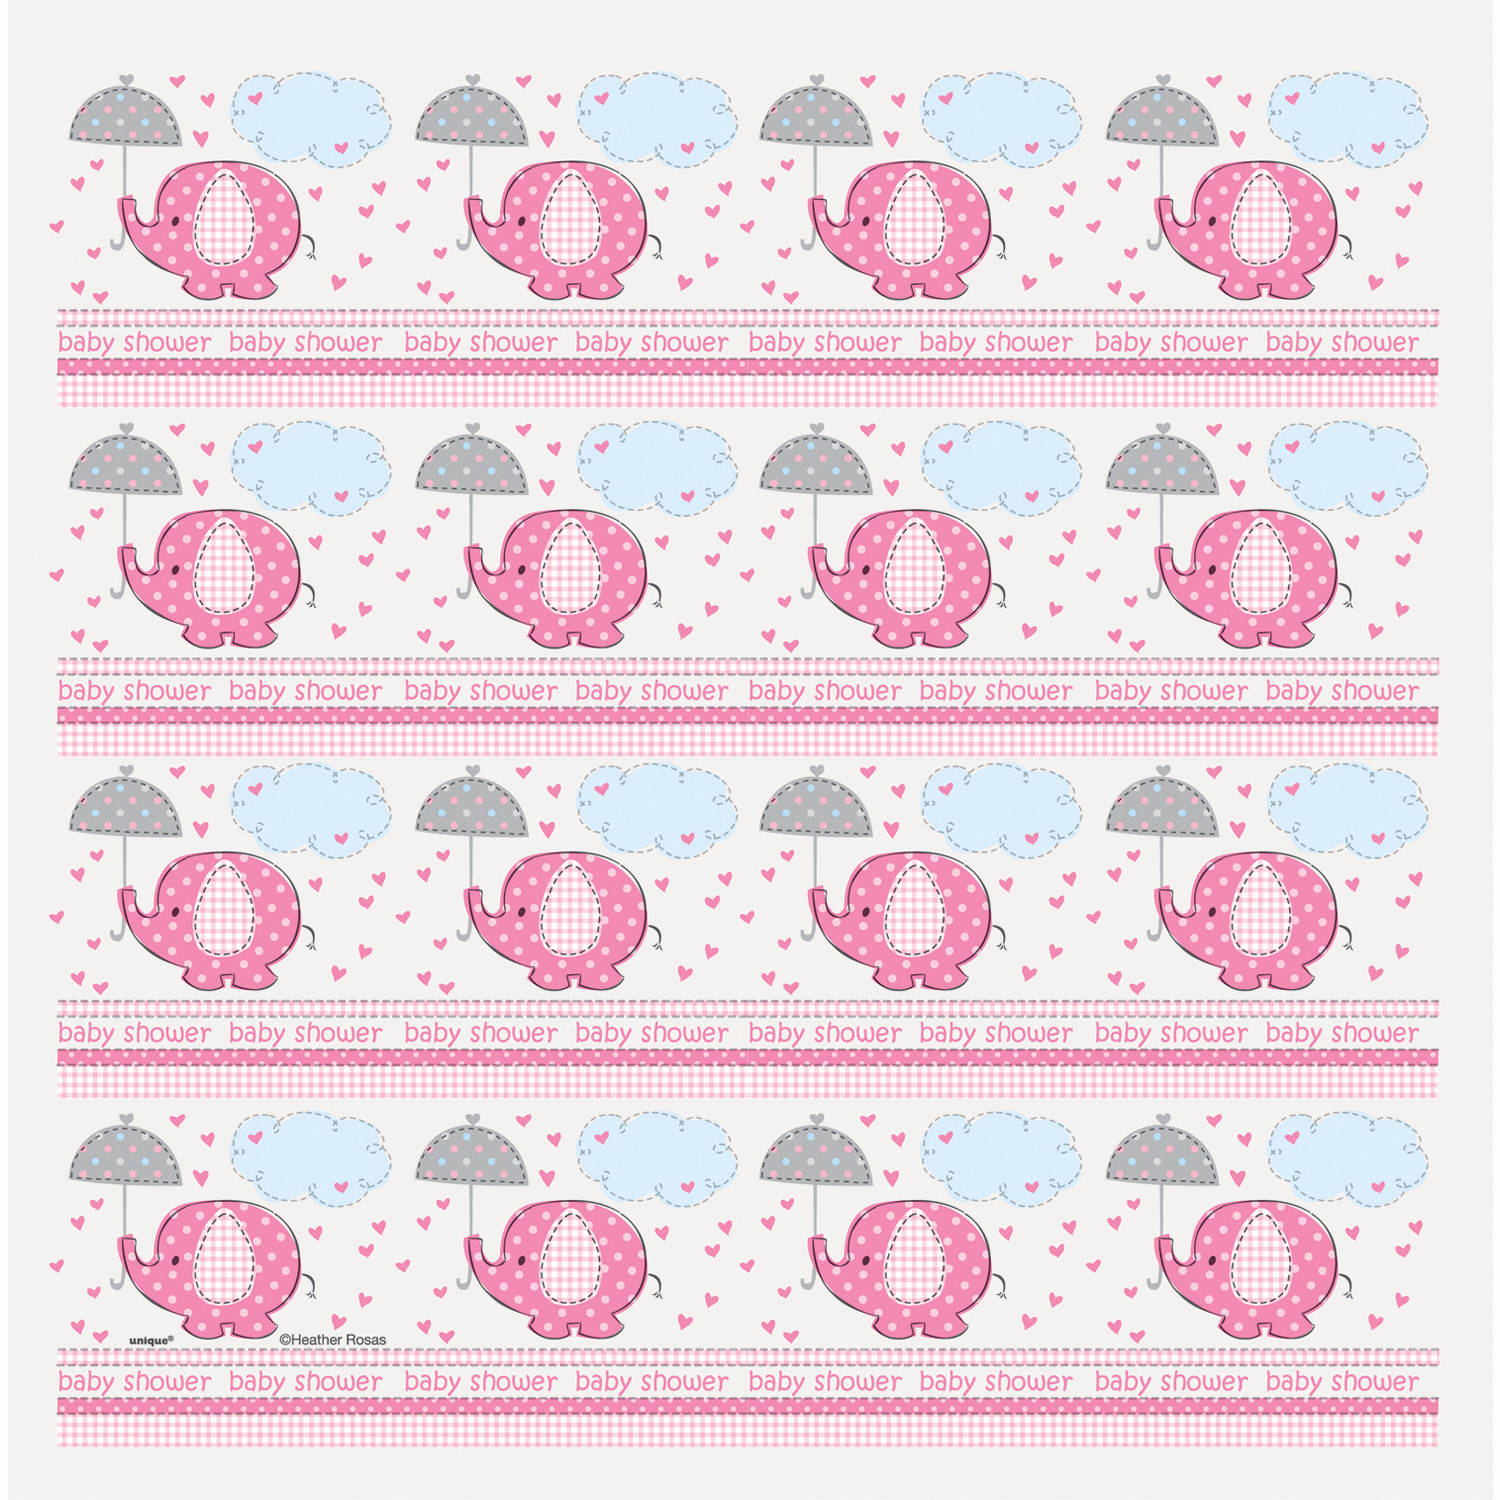 Elephant Baby Shower Wrapping Paper, 5 X 2.5 Ft, Pink, 1ct